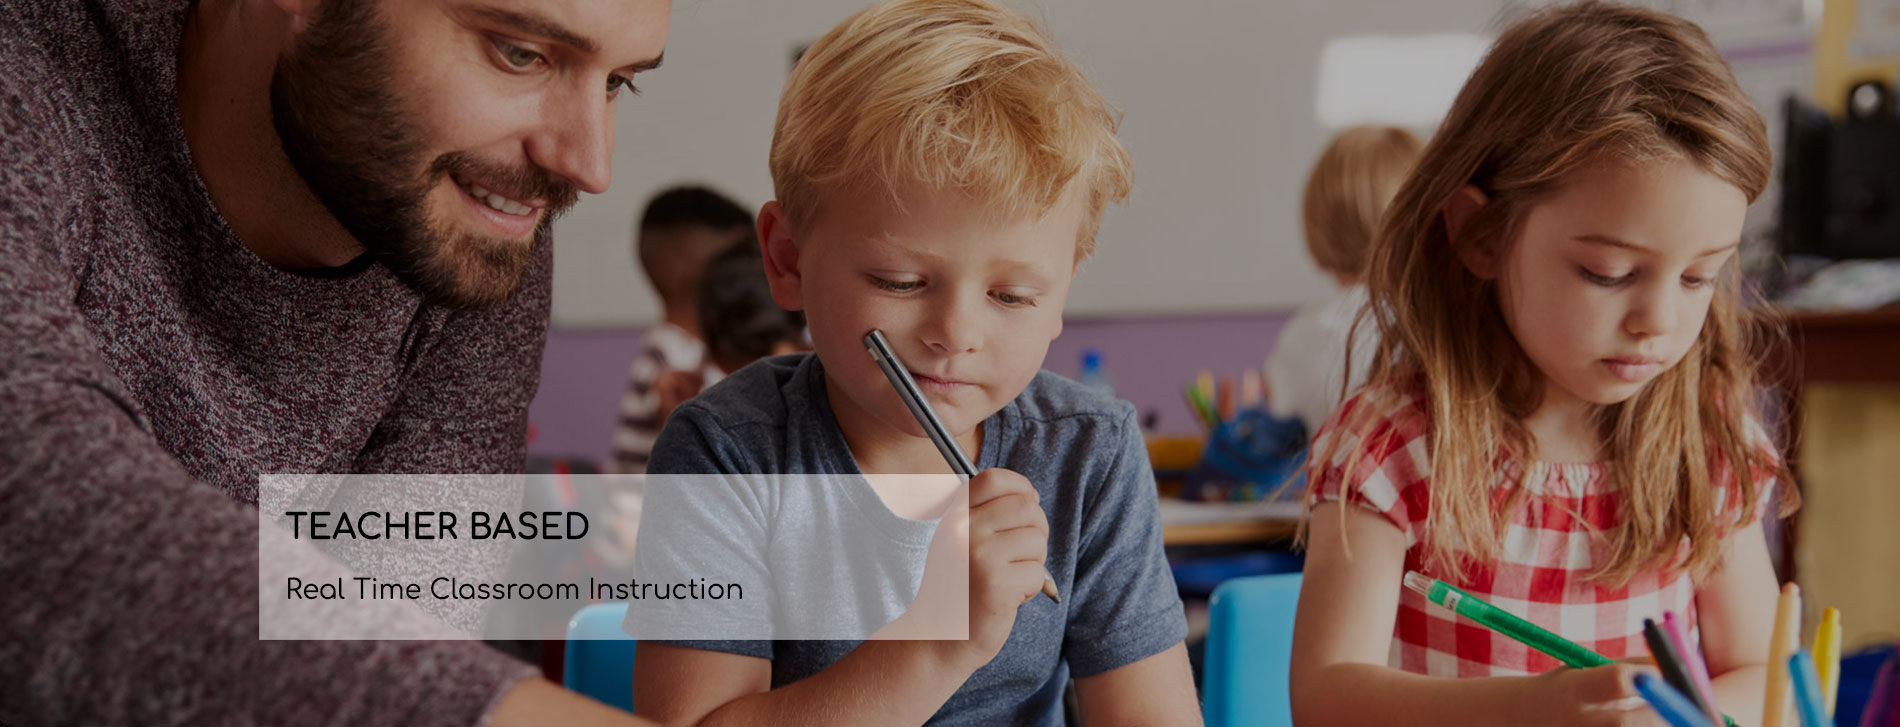 Best Brains TEACHER BASED Real Time Classroom Instruction